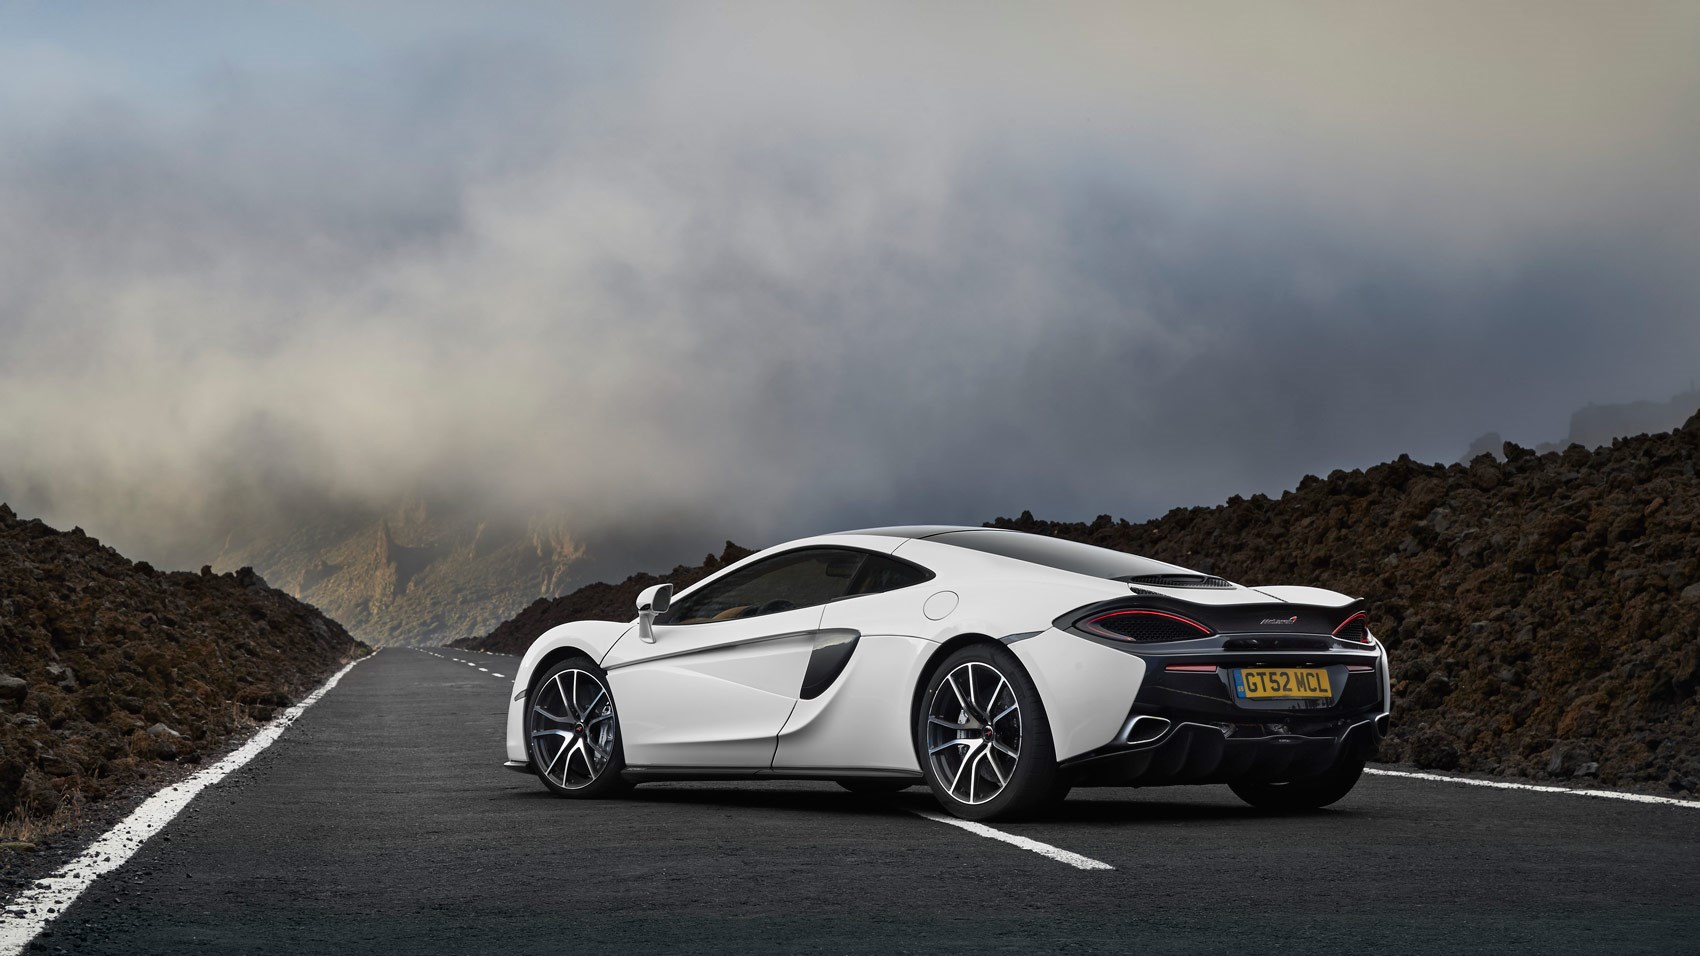 Mclaren 570gt Sport Pack 2018 Review Pack S The One Car Magazine